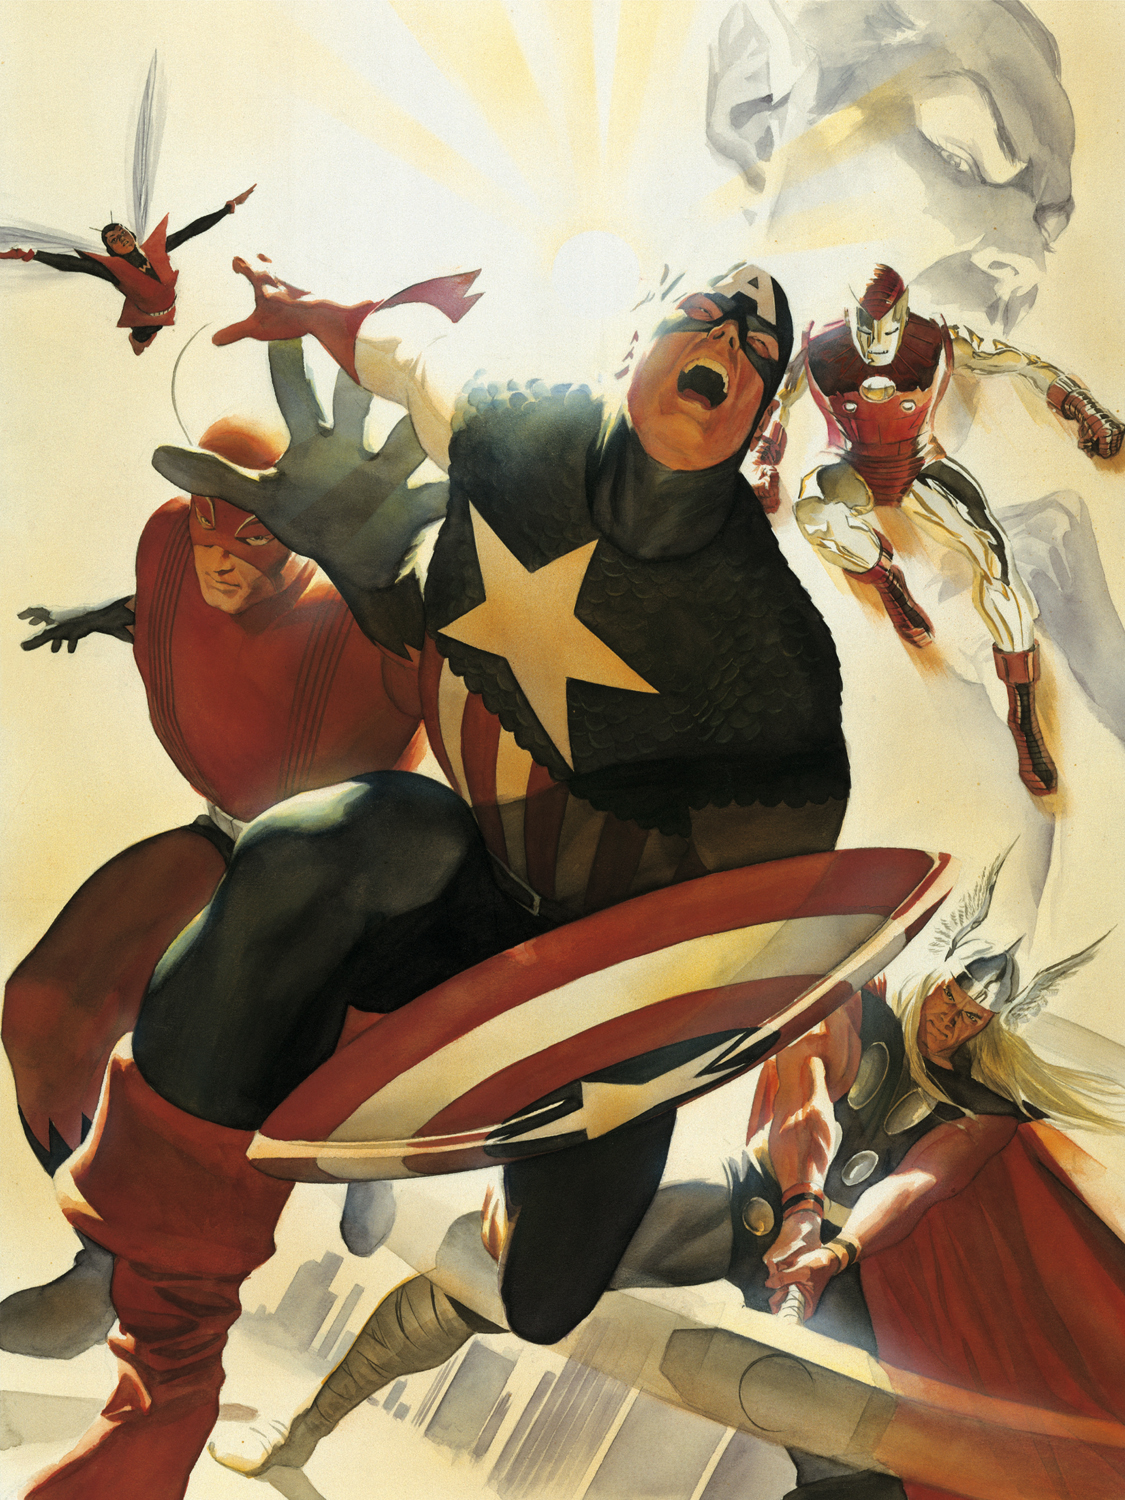 Avengers with Captain America, Iron Man, and Thor limited edition Marvel art by Alex Ross last minute gift idea $150